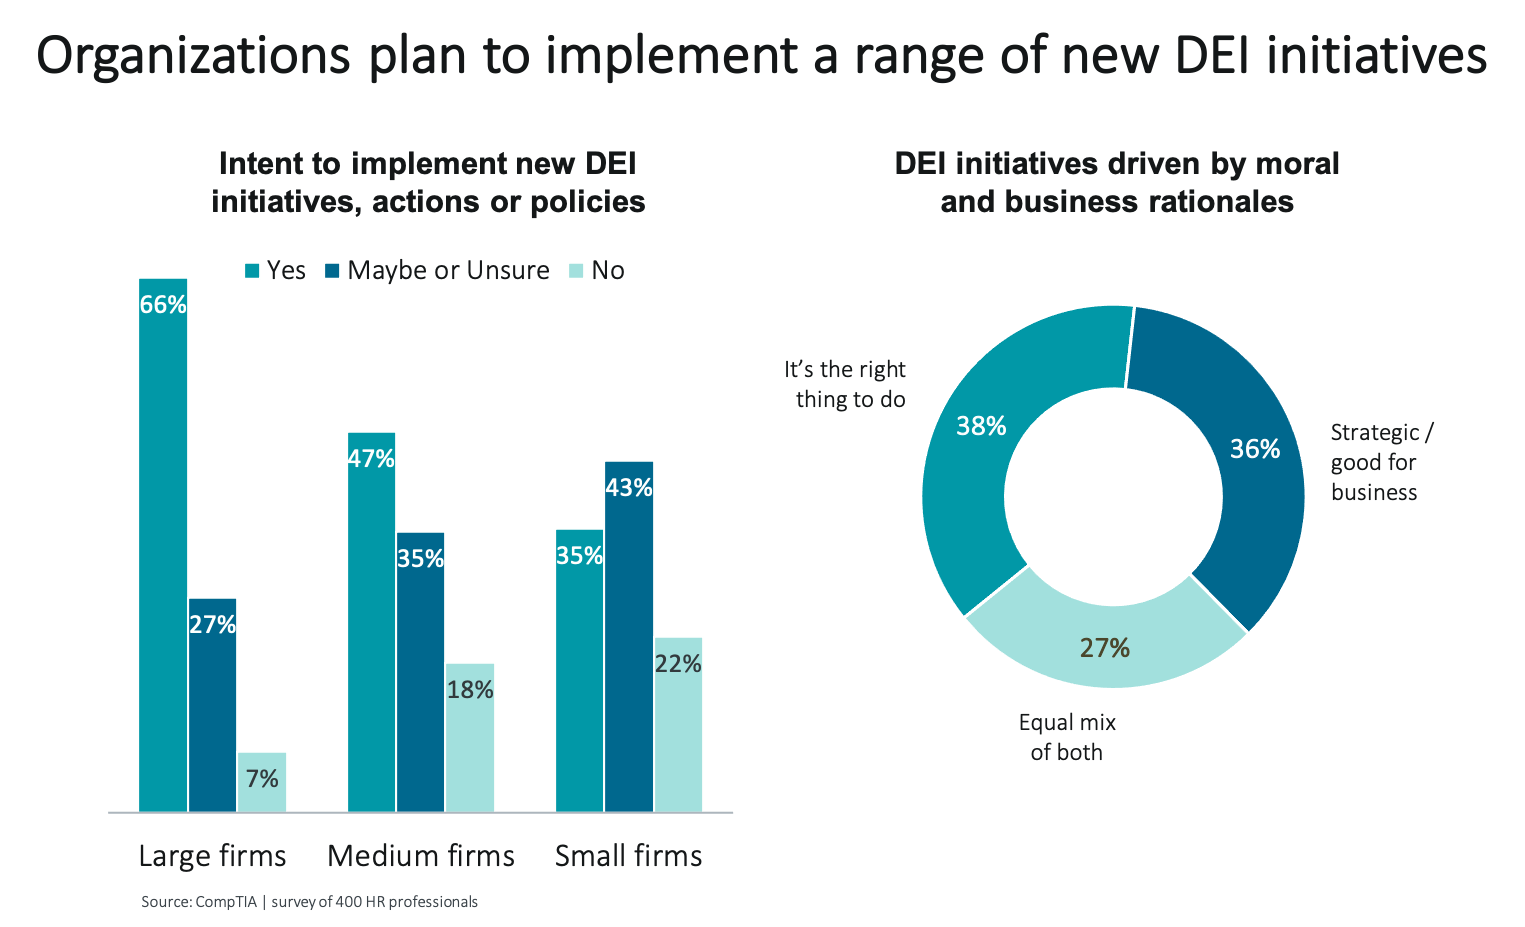 Organizations plan to implement a range of new DEI initiatives